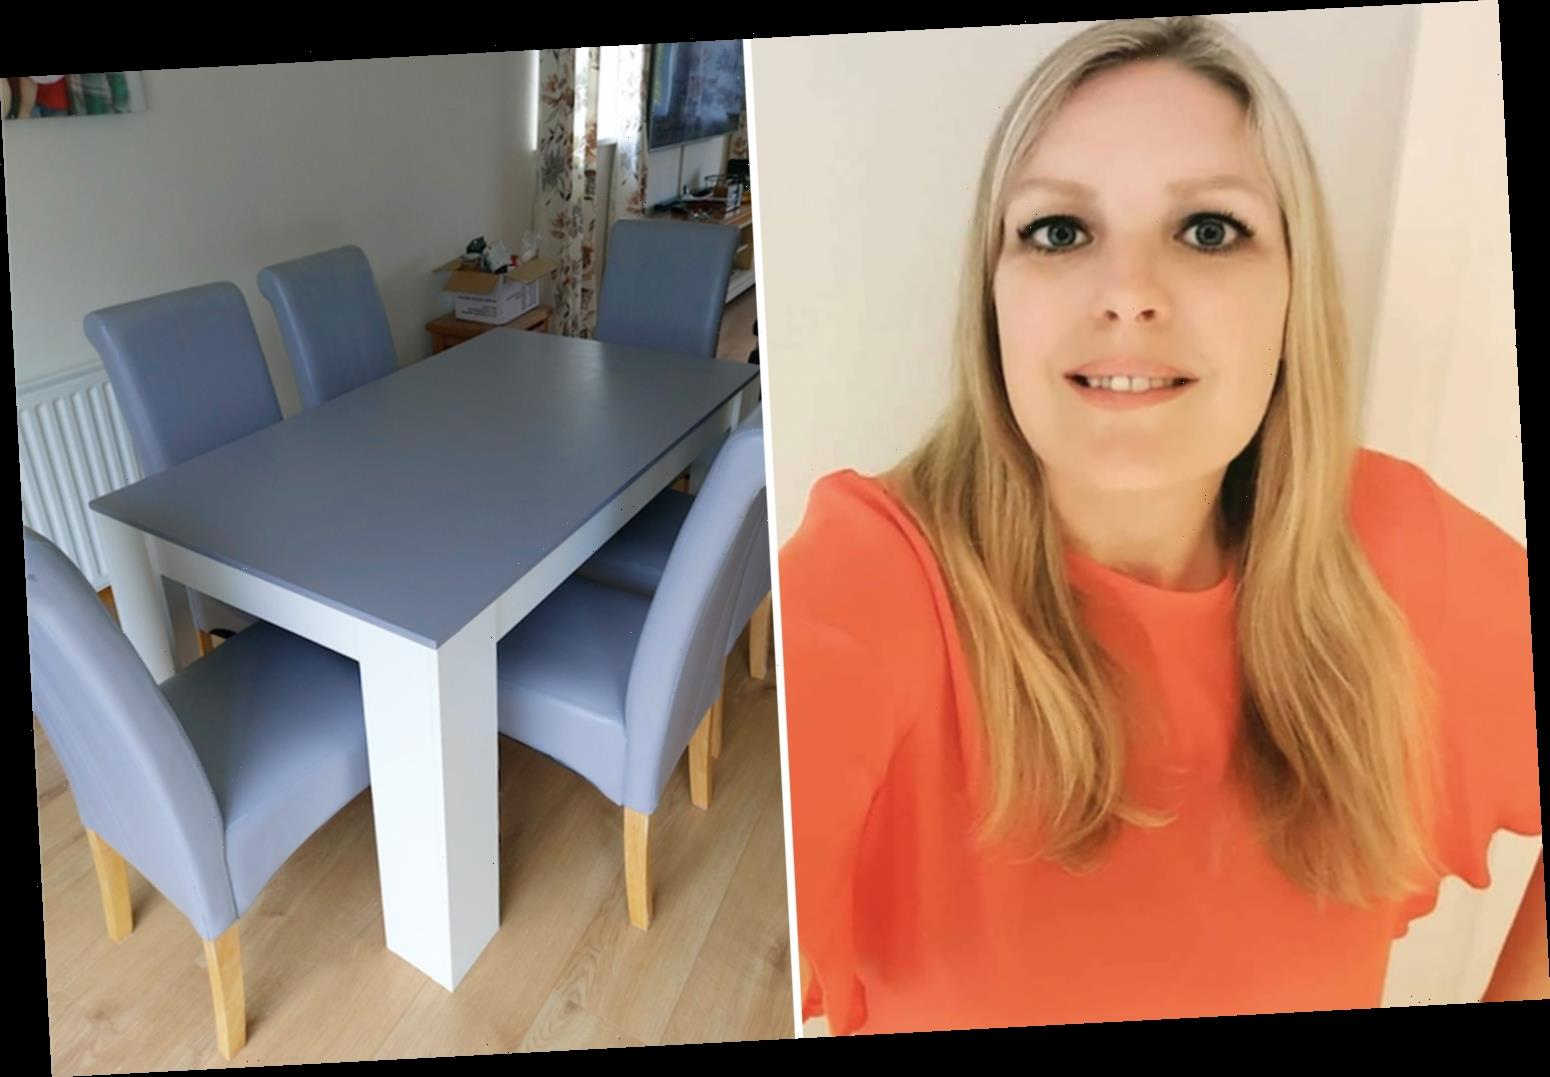 Savvy mum transforms old dining room furniture for just £50 by painting it – saving hundreds